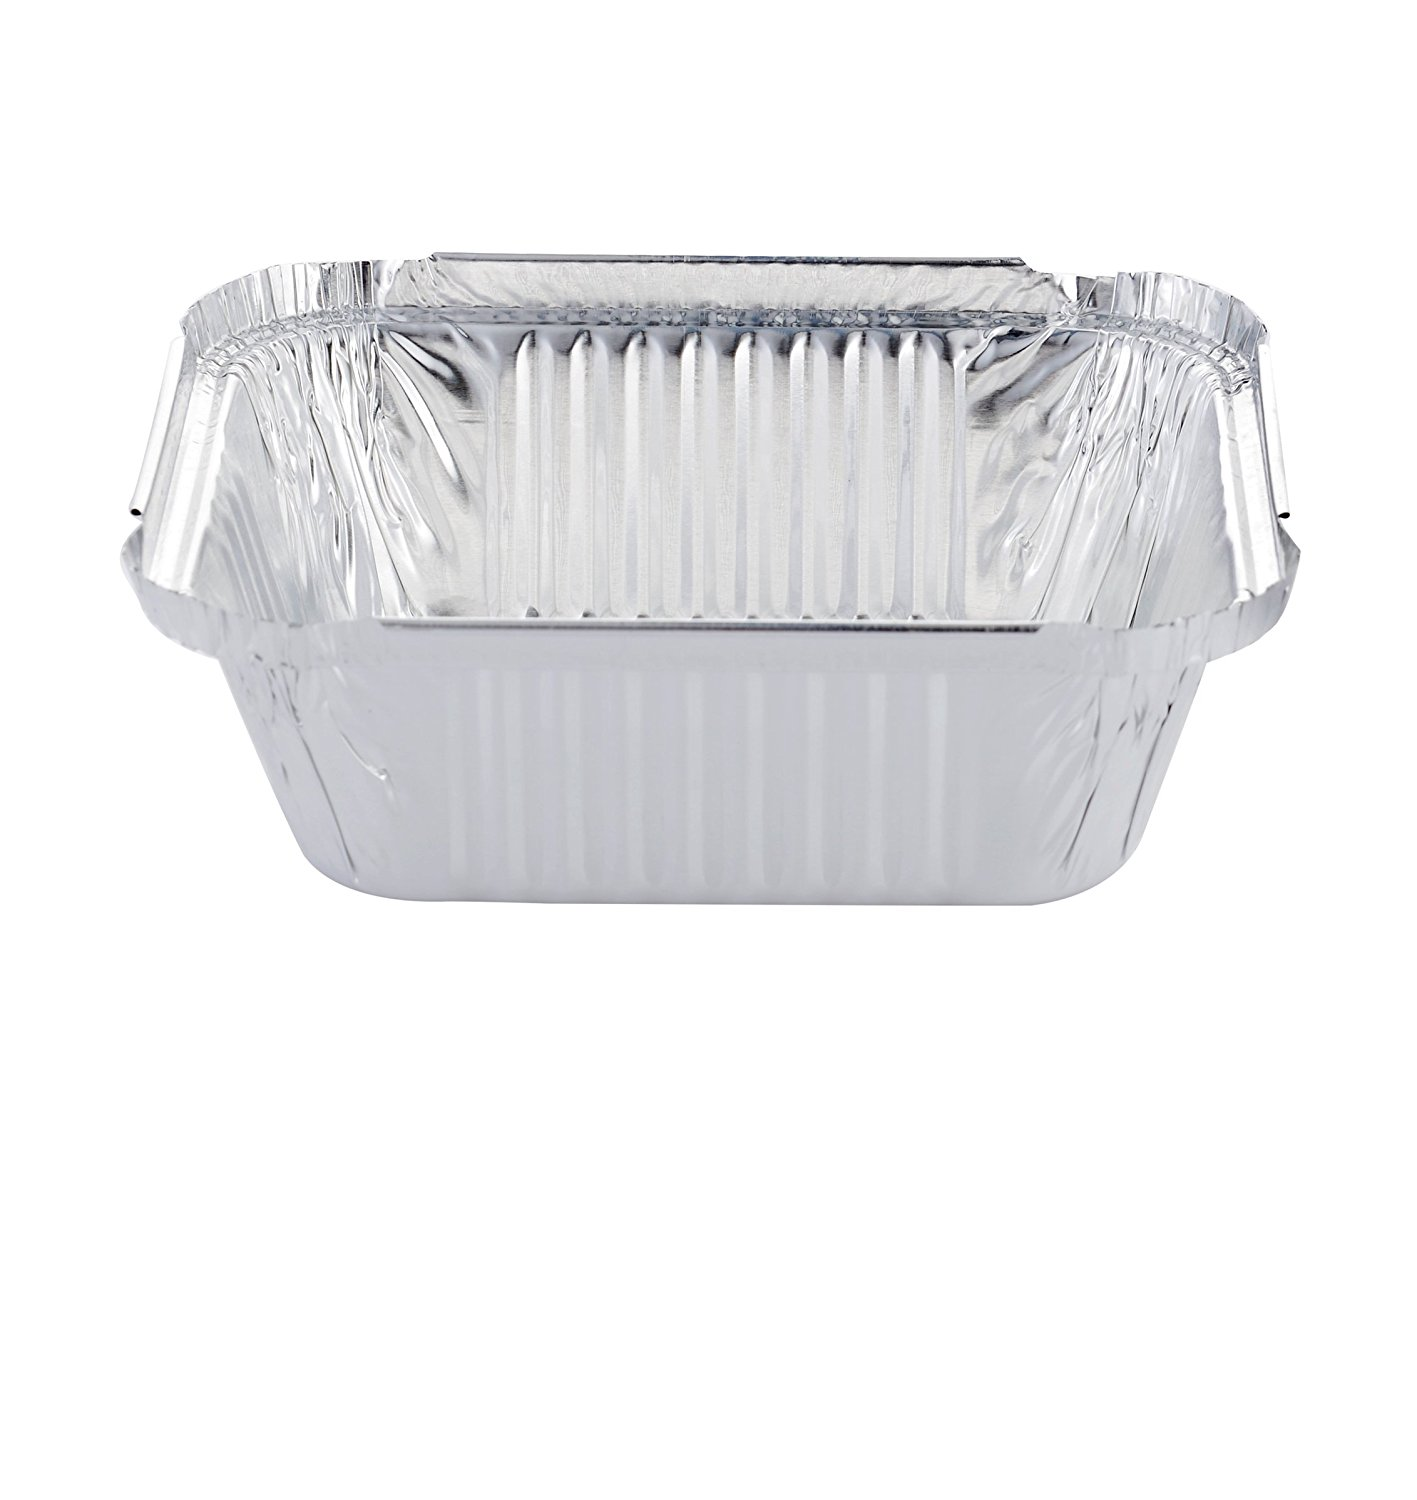 120 X Aluminium Foil Trays With Lid Disposable Food